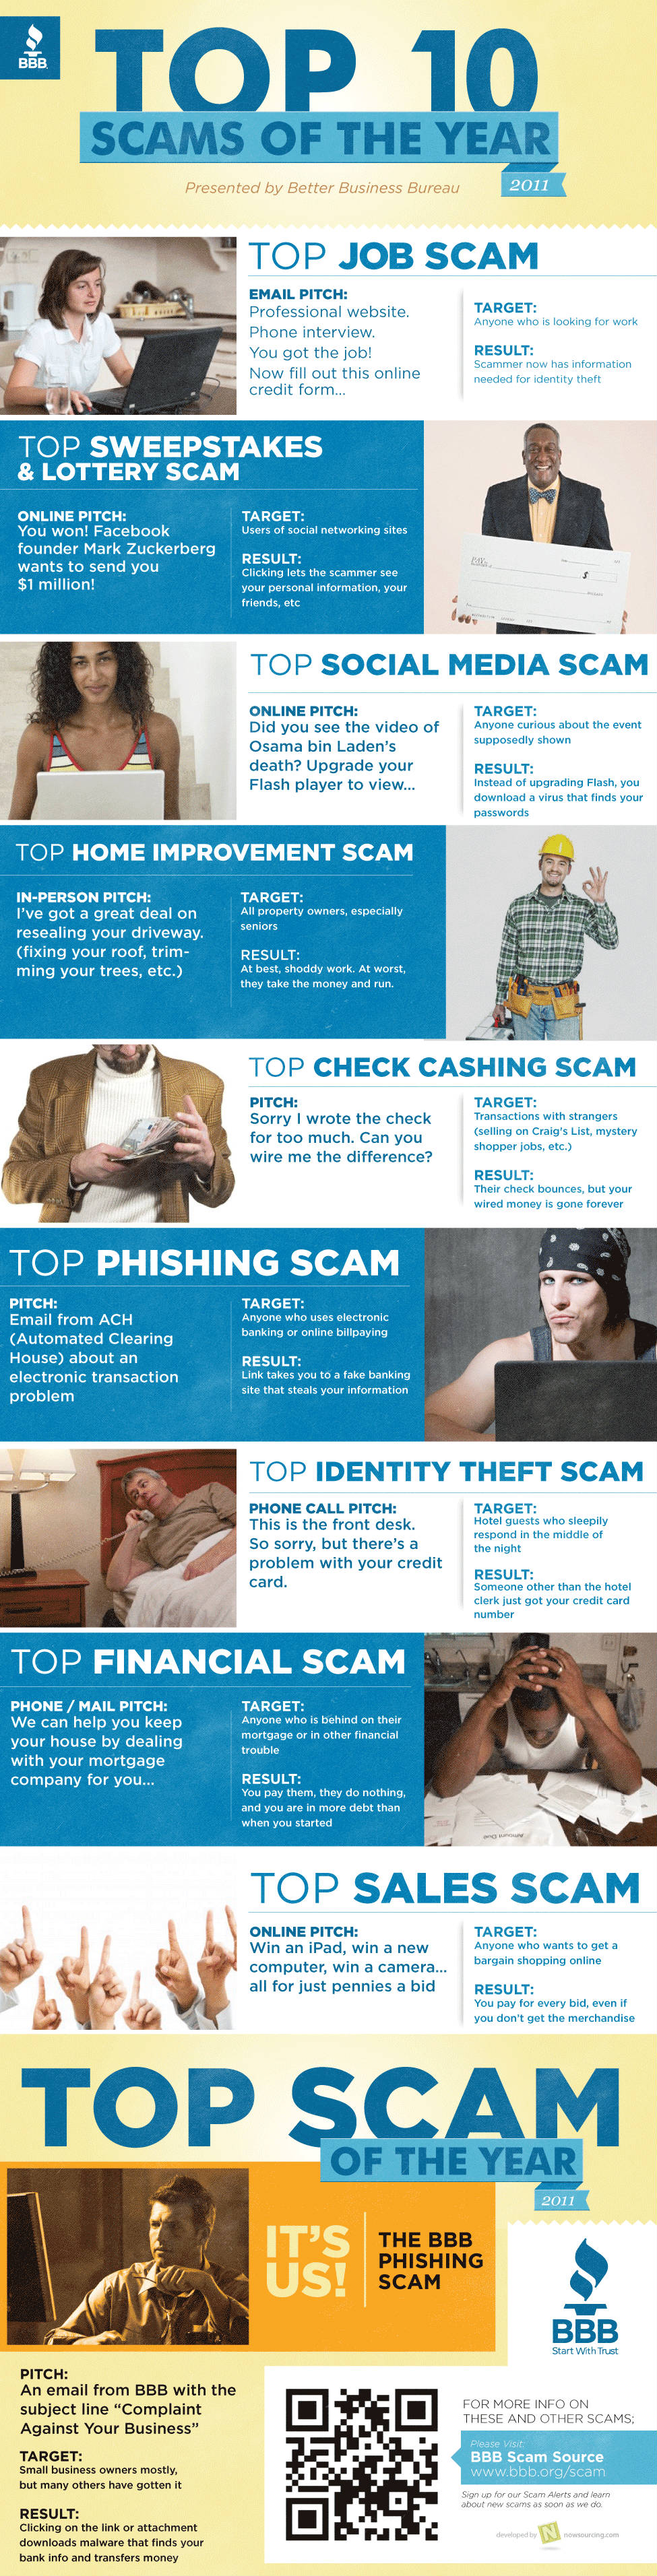 Top 10 Scams of the Year 2011 (Infographic)